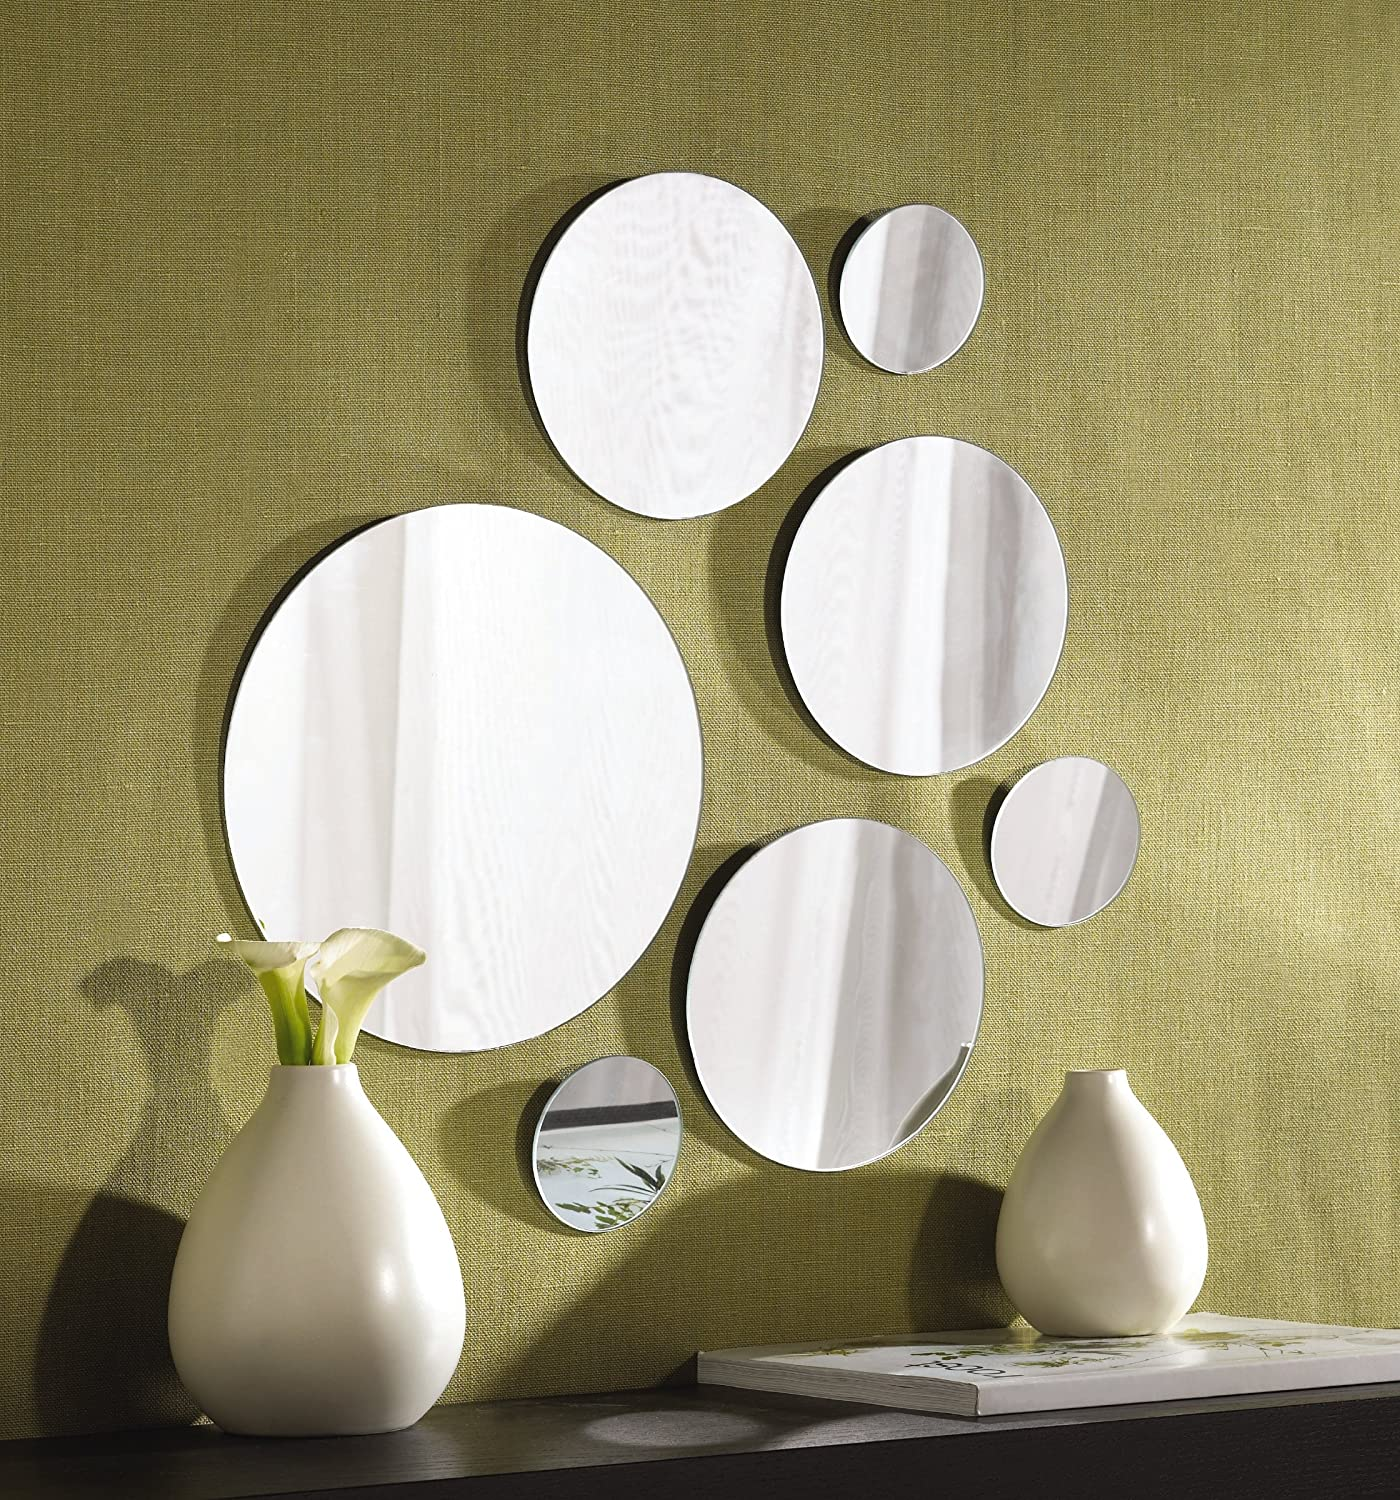 amazoncom elements round wall mount mirror set of 7 assorted sizes home kitchen - Mirrors And Wall Art